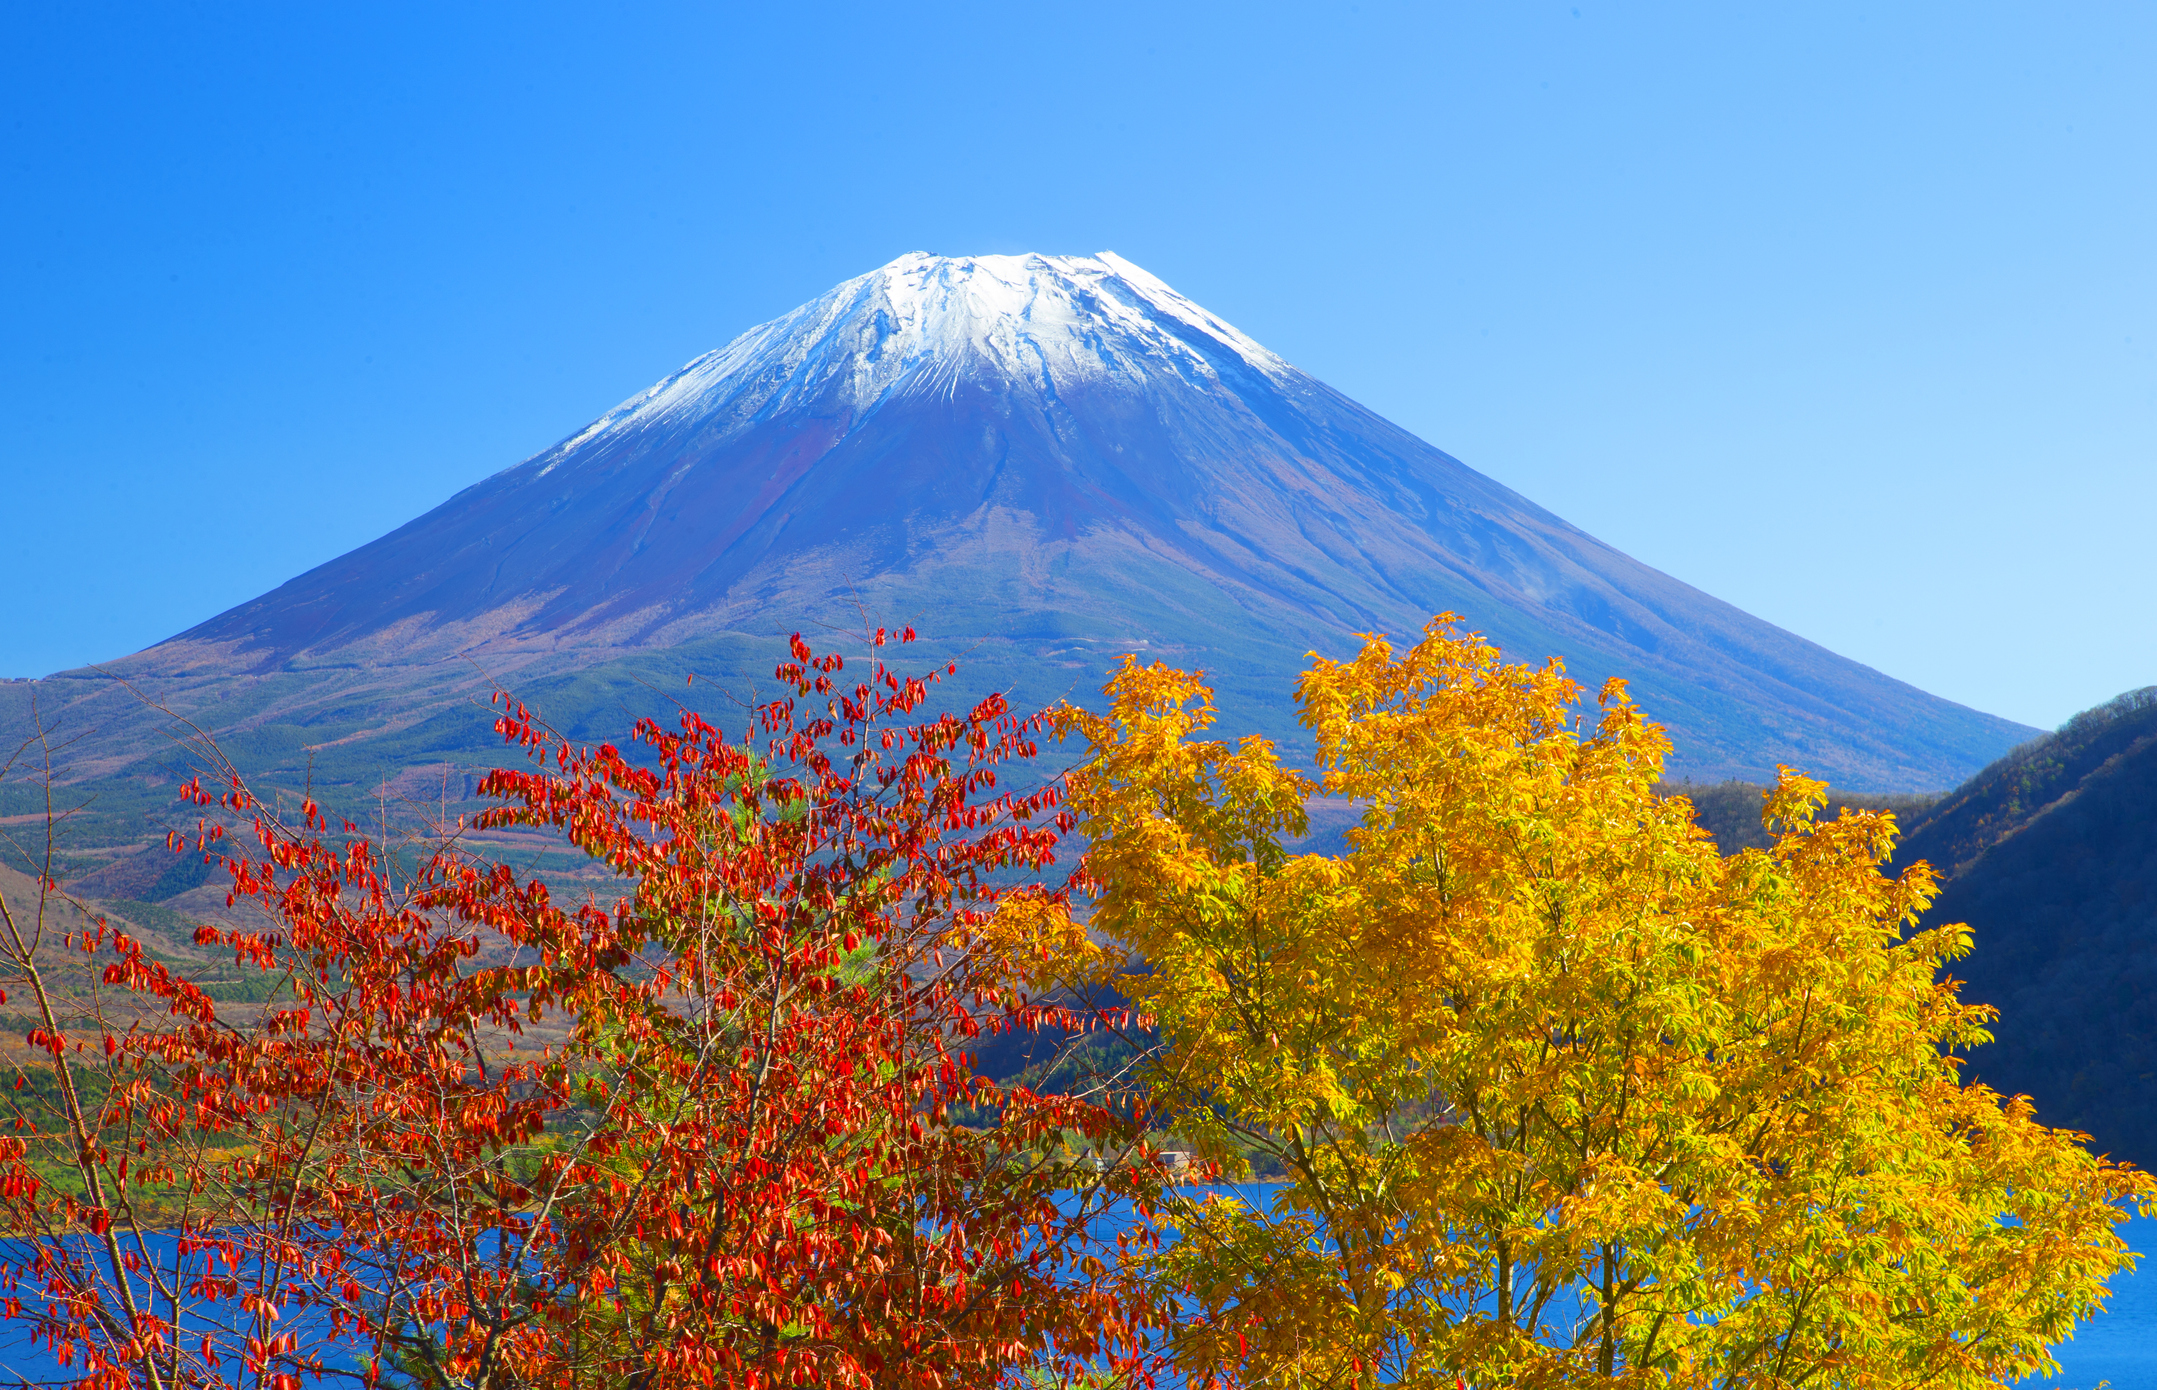 An Autumn Pilgrimage Retreat in Japan, November 2019 - HIKING YOGA FELDENKRAIS MEDITATIONFor preliminary details email Sara@yogamoves.net.auFull details available from Sara in July.